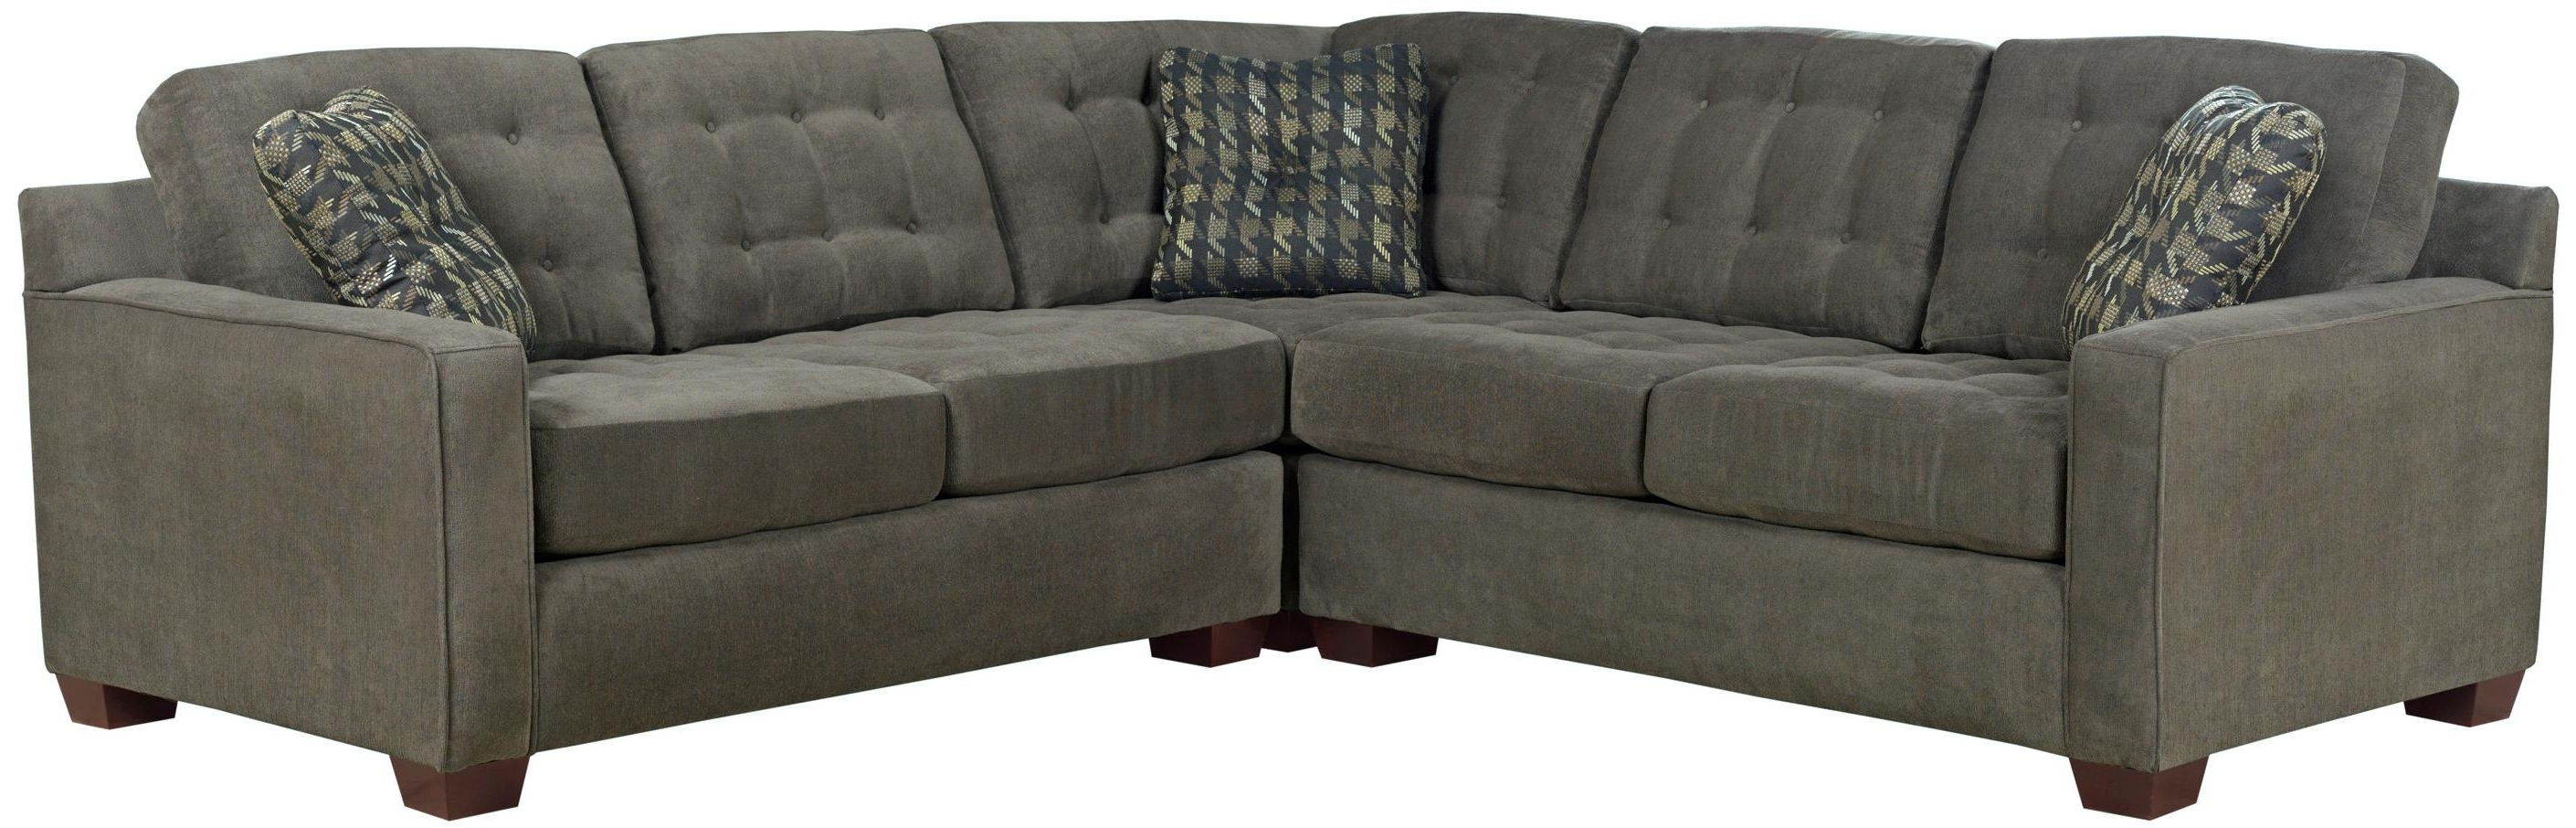 Recent Broyhill Furniture Tribeca Contemporary L Shaped Sectional Sofa Inside Broyhill Sectional Sofas (View 7 of 20)